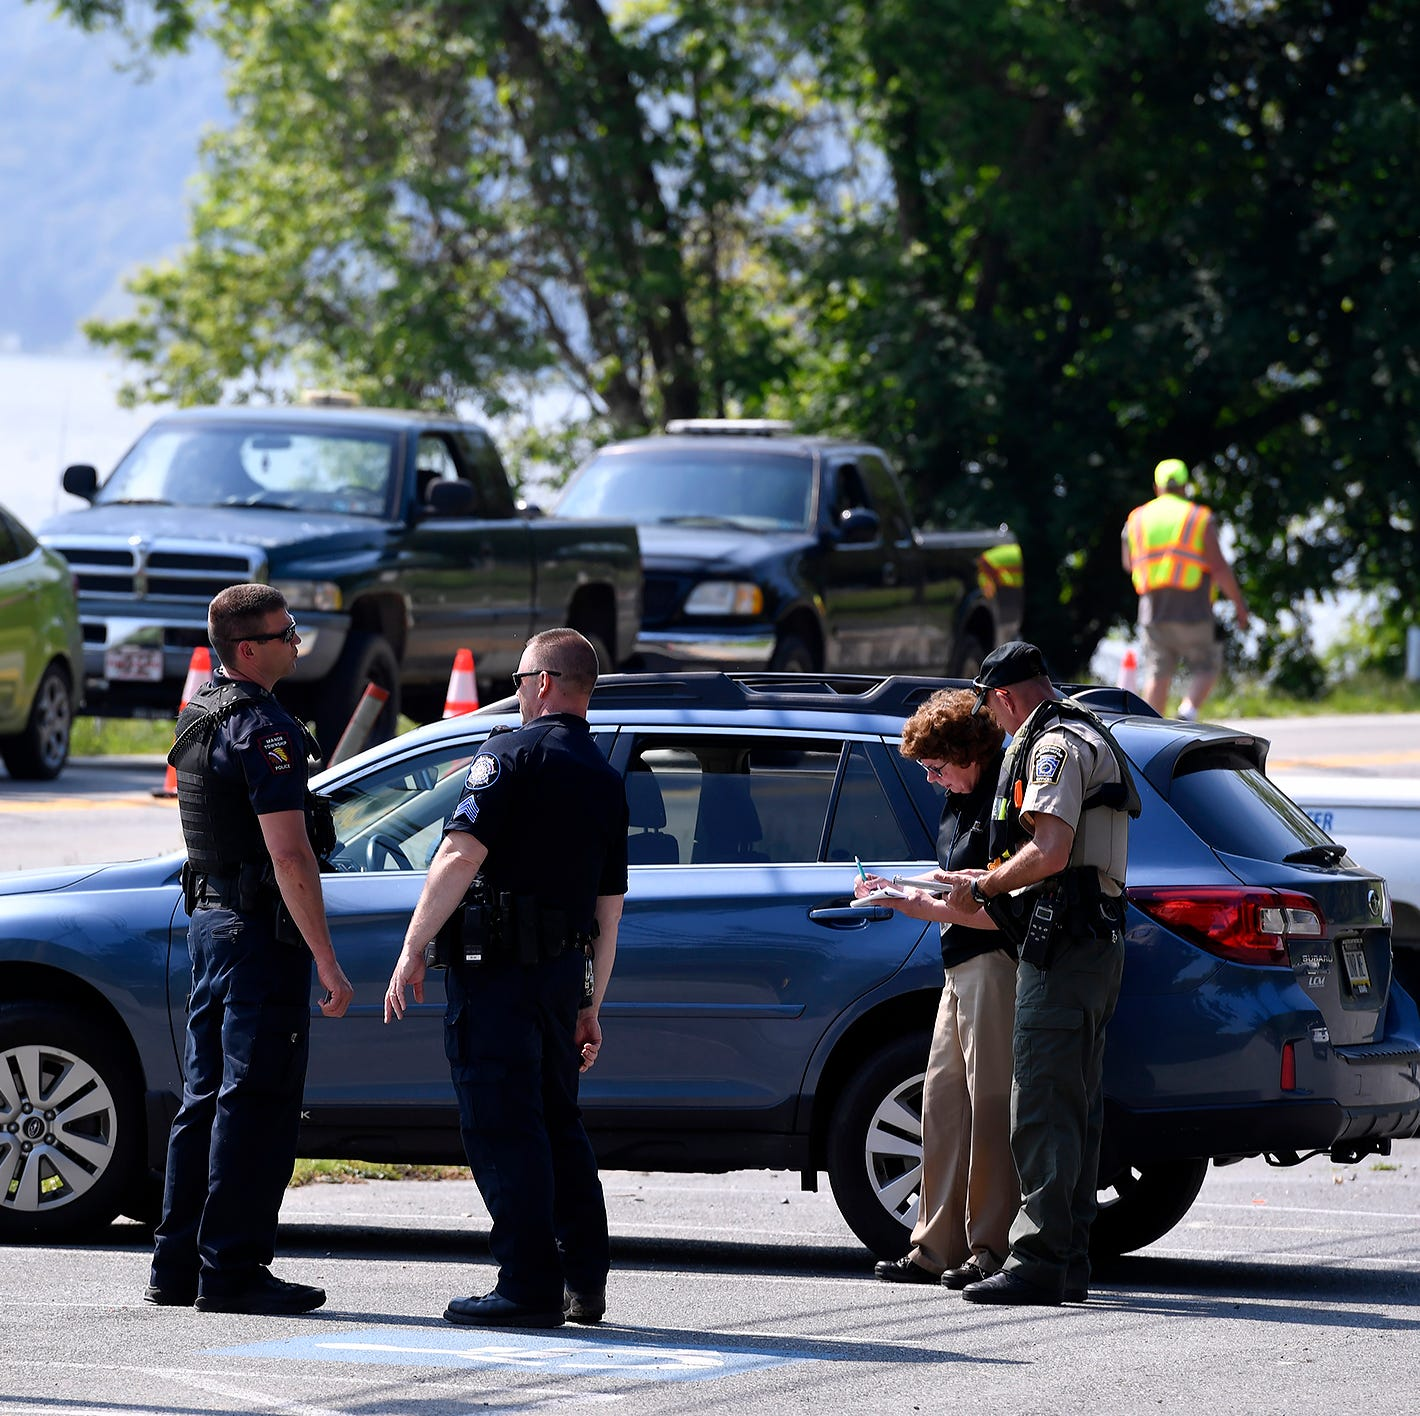 Lancaster County police and coroner are investigating the death of a person found in the Susquehanna River near Klines Run Park in Lower Windsor Township, Sunday, May 19, 2019. John A. Pavoncello photo